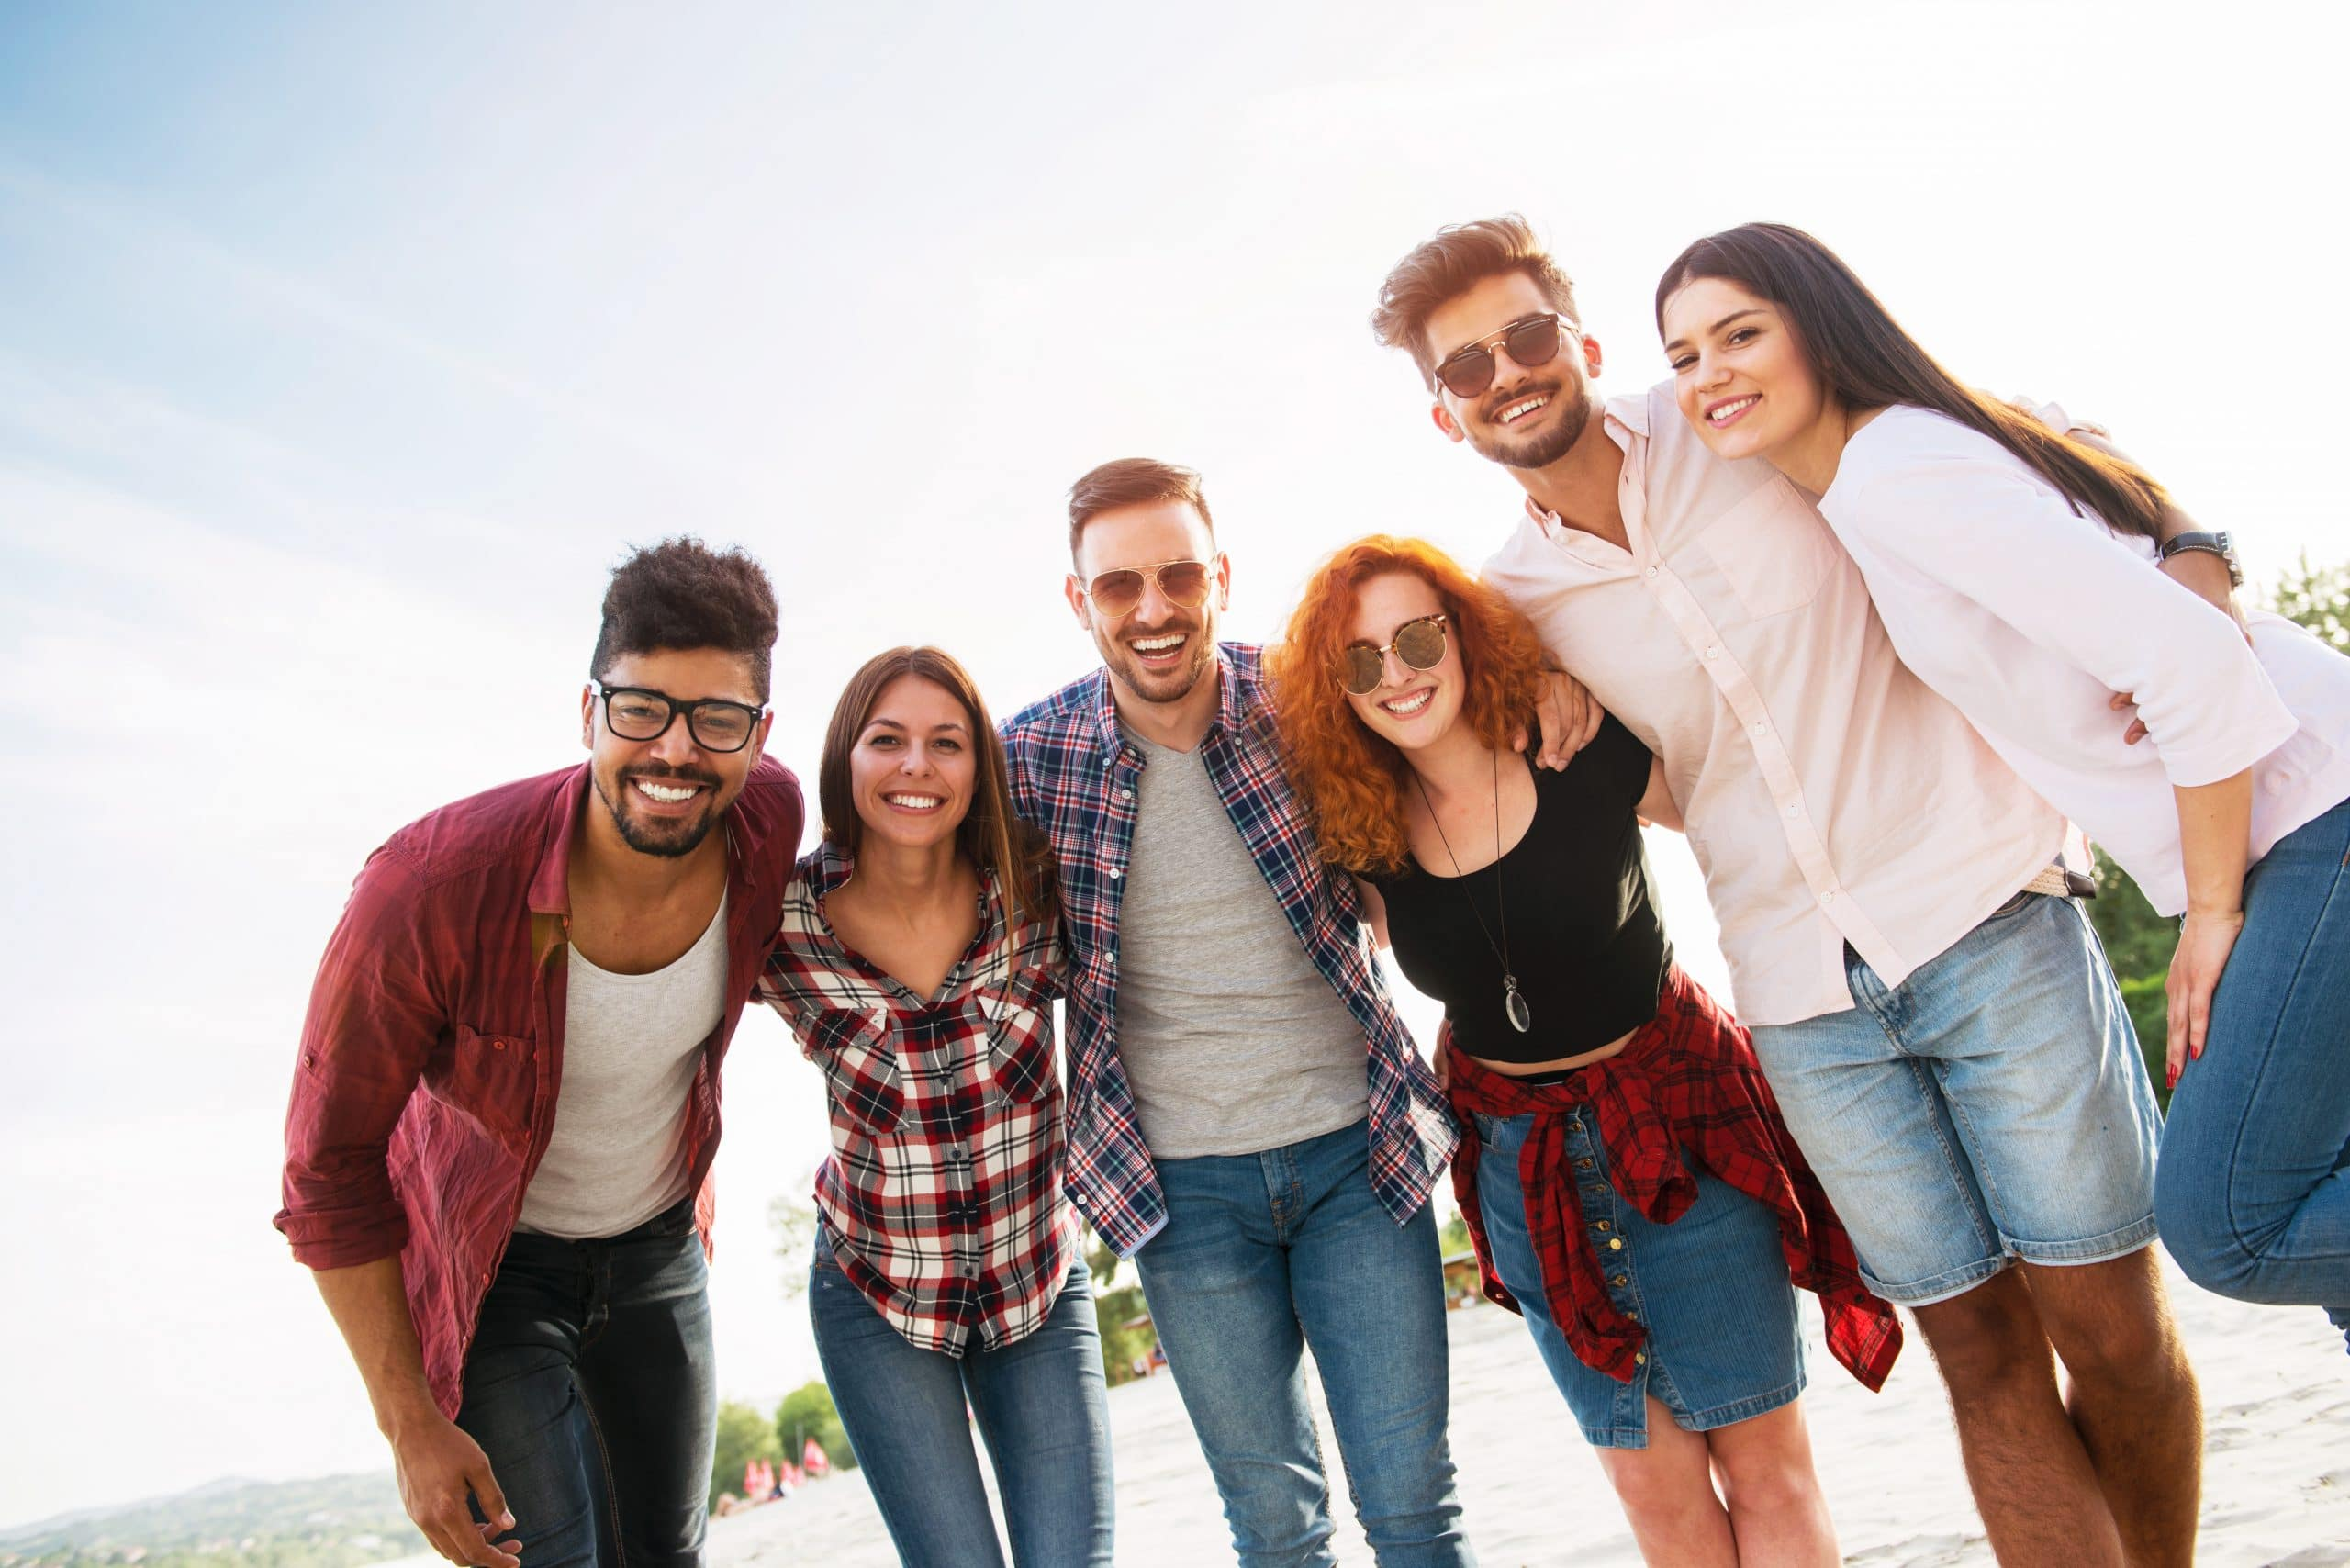 Invisalign Teeth Aligners at Indian Trail, NC